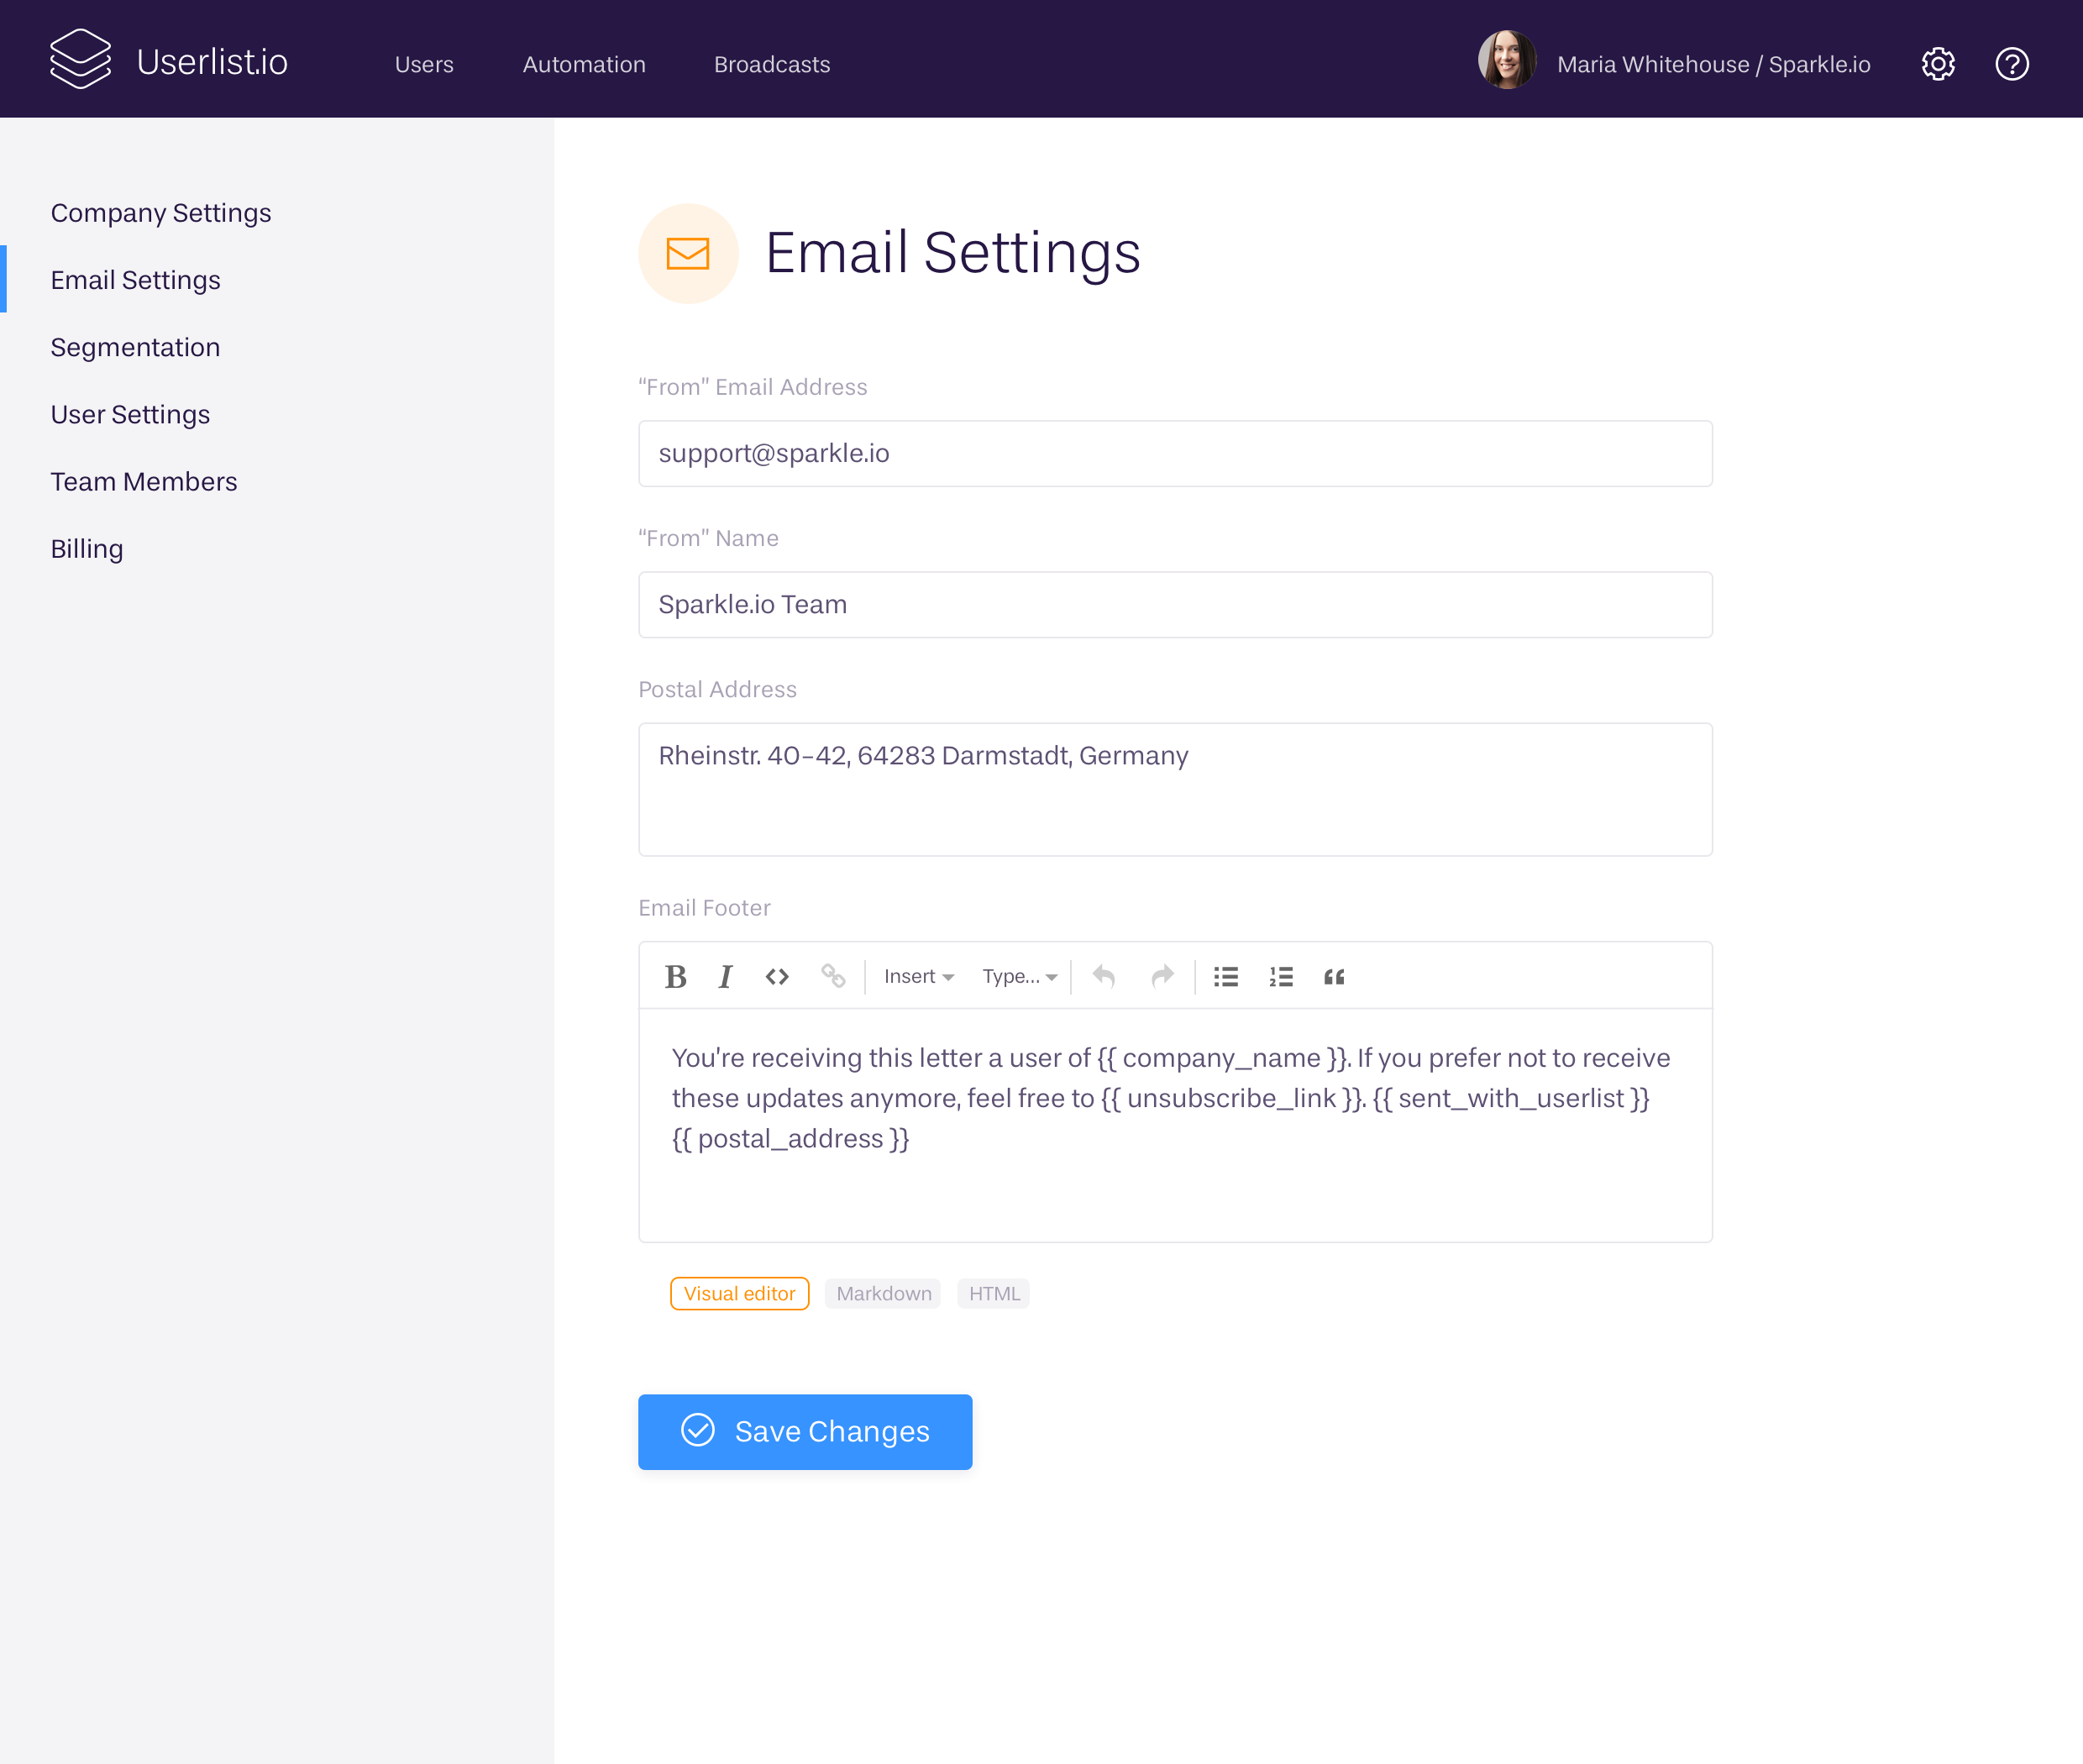 Email settings at Userlist.io